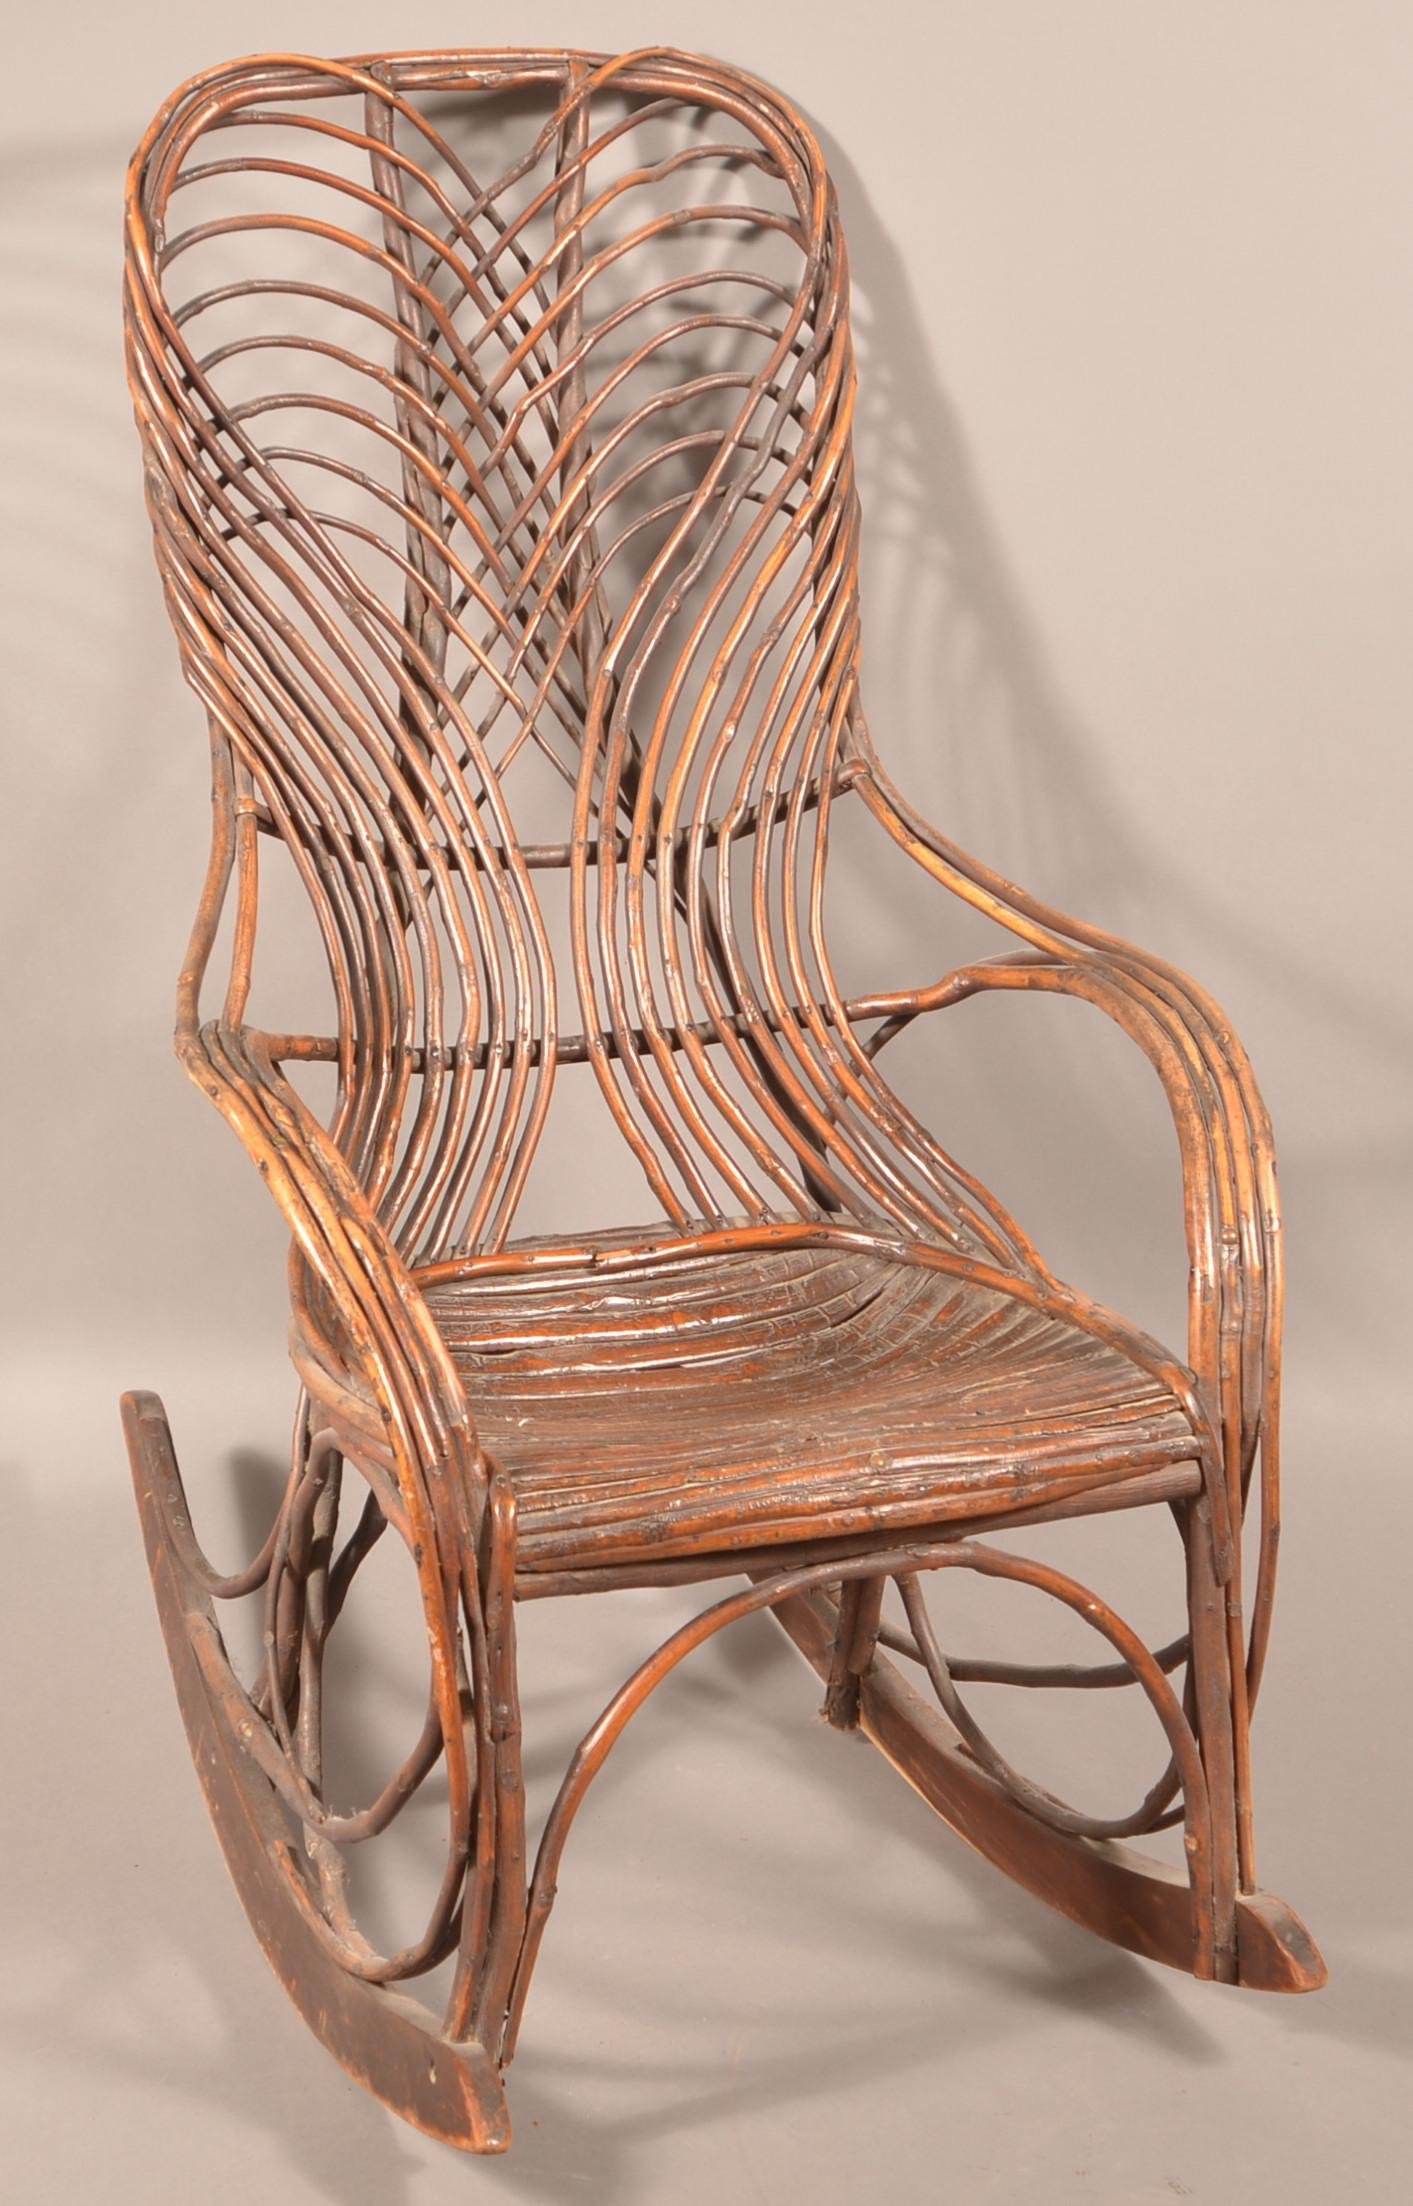 Late 19th Century Bent Twig Rocking Chair.